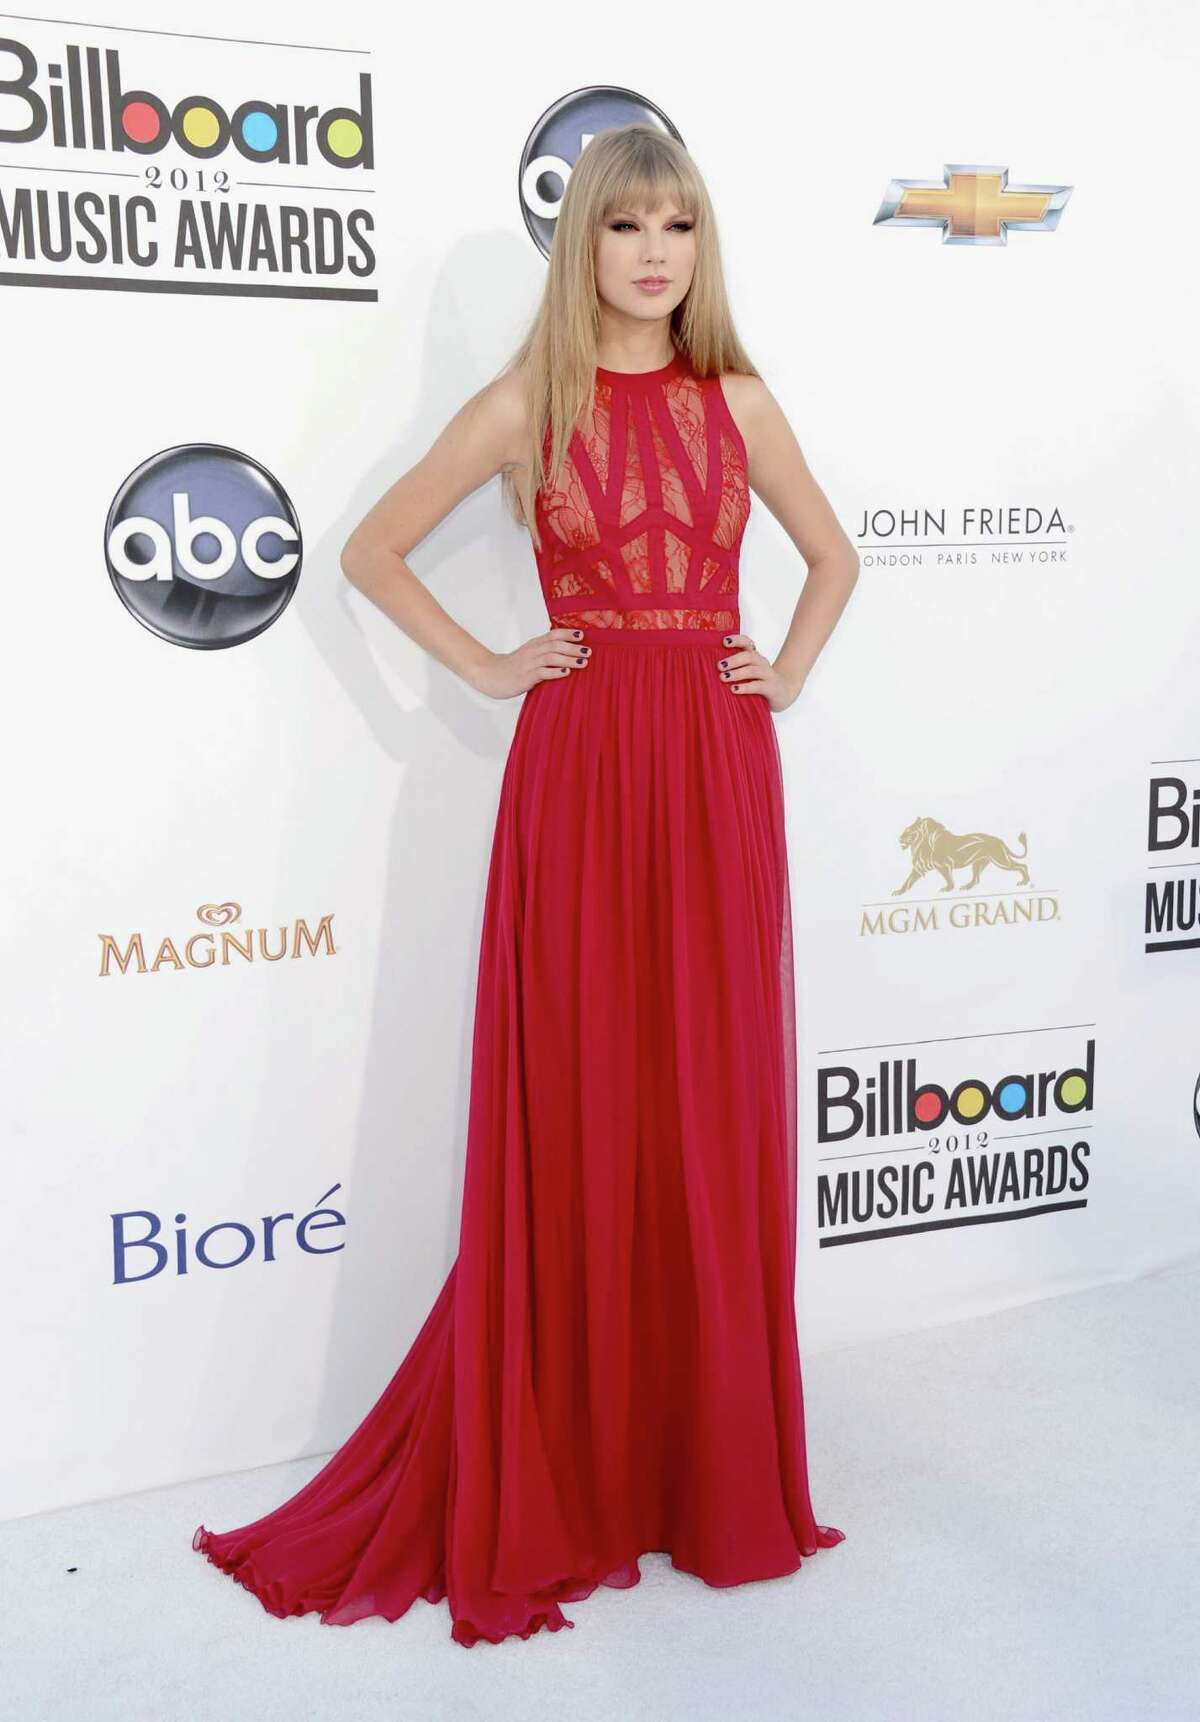 LAS VEGAS, NV - MAY 20: Singer Taylor Swift arrives at the 2012 Billboard Music Awards held at the MGM Grand Garden Arena on May 20, 2012 in Las Vegas, Nevada.